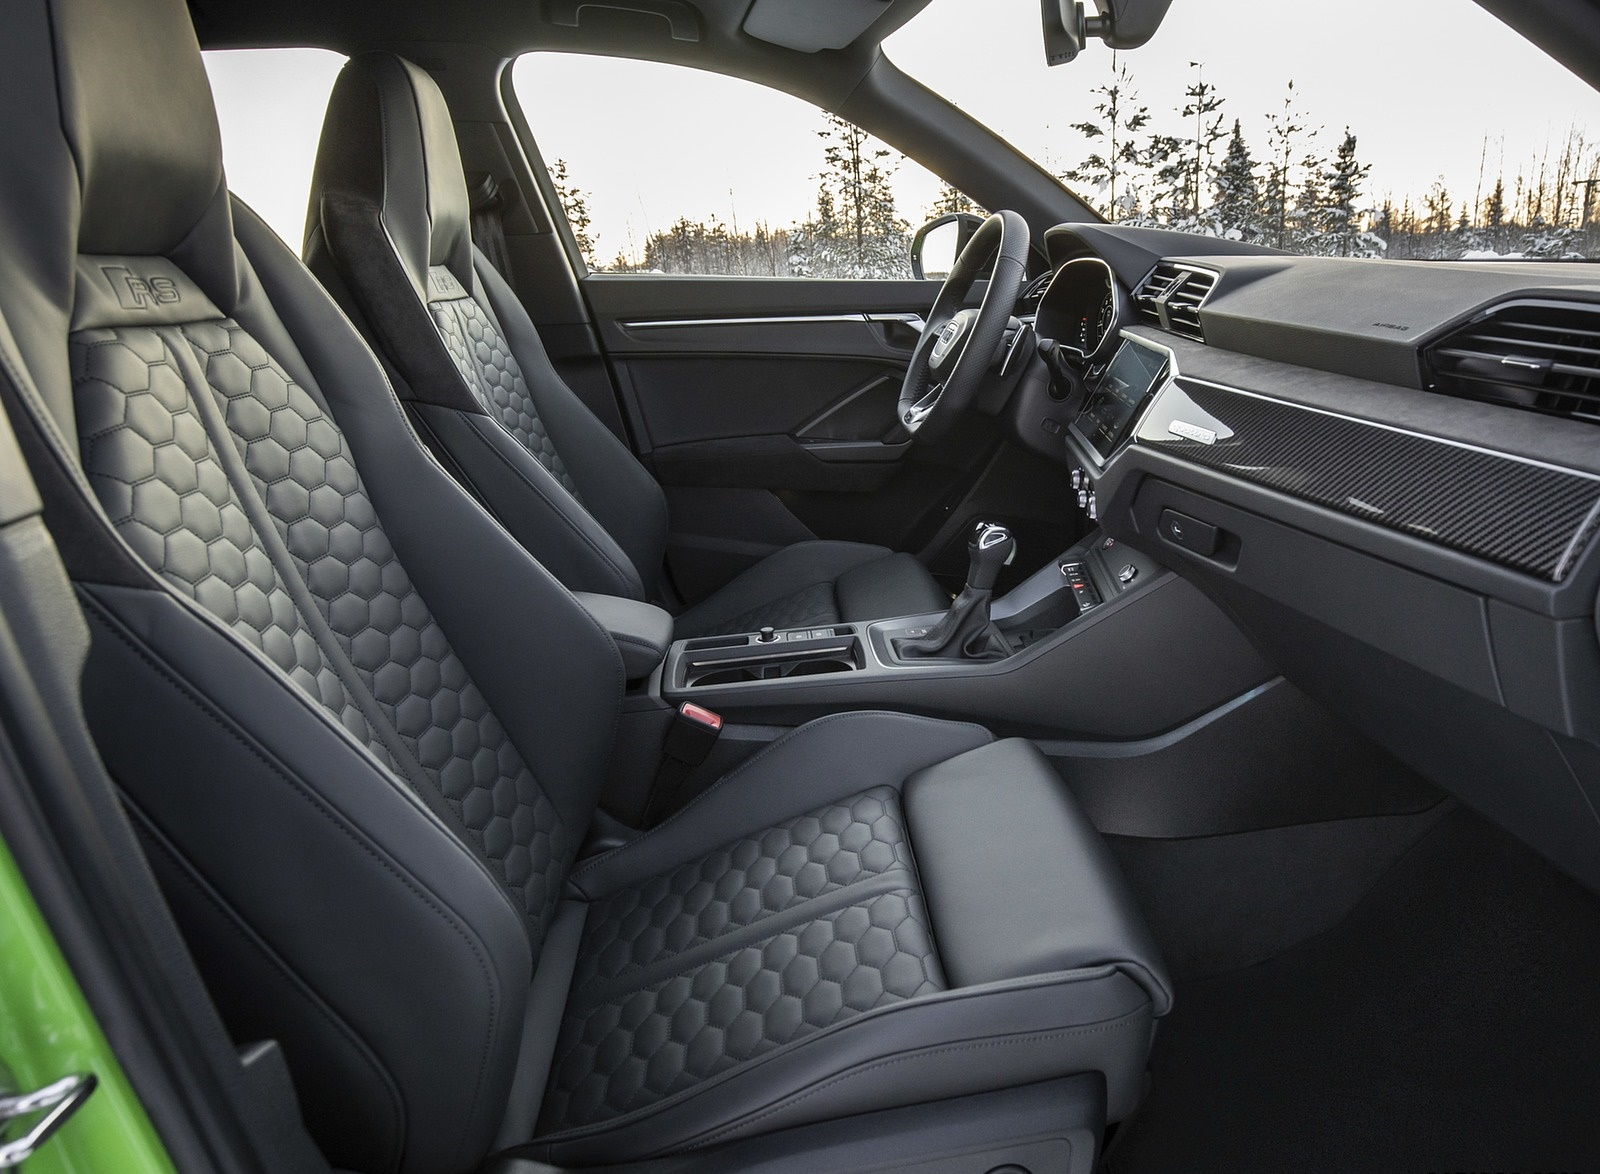 2020 Audi RS Q3 Interior Seats Wallpapers #39 of 116